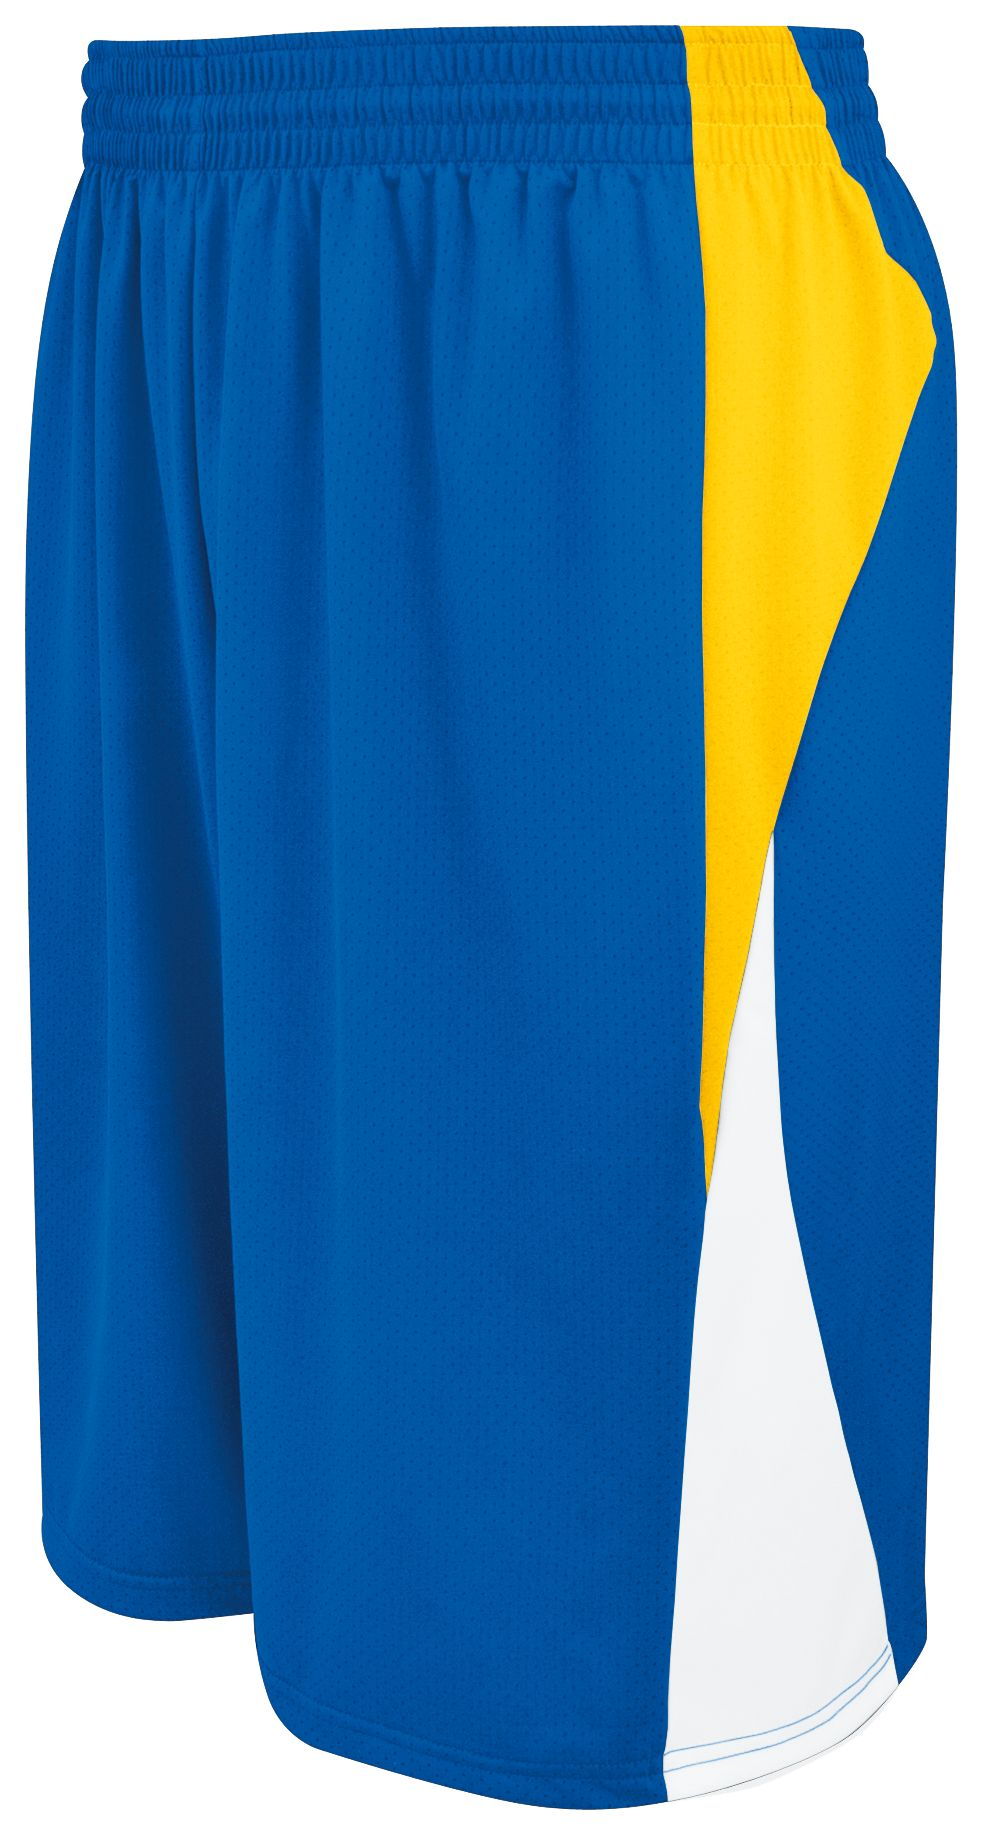 Campus Reversible Shorts - ROYAL/ATHLETIC GOLD/WHITE